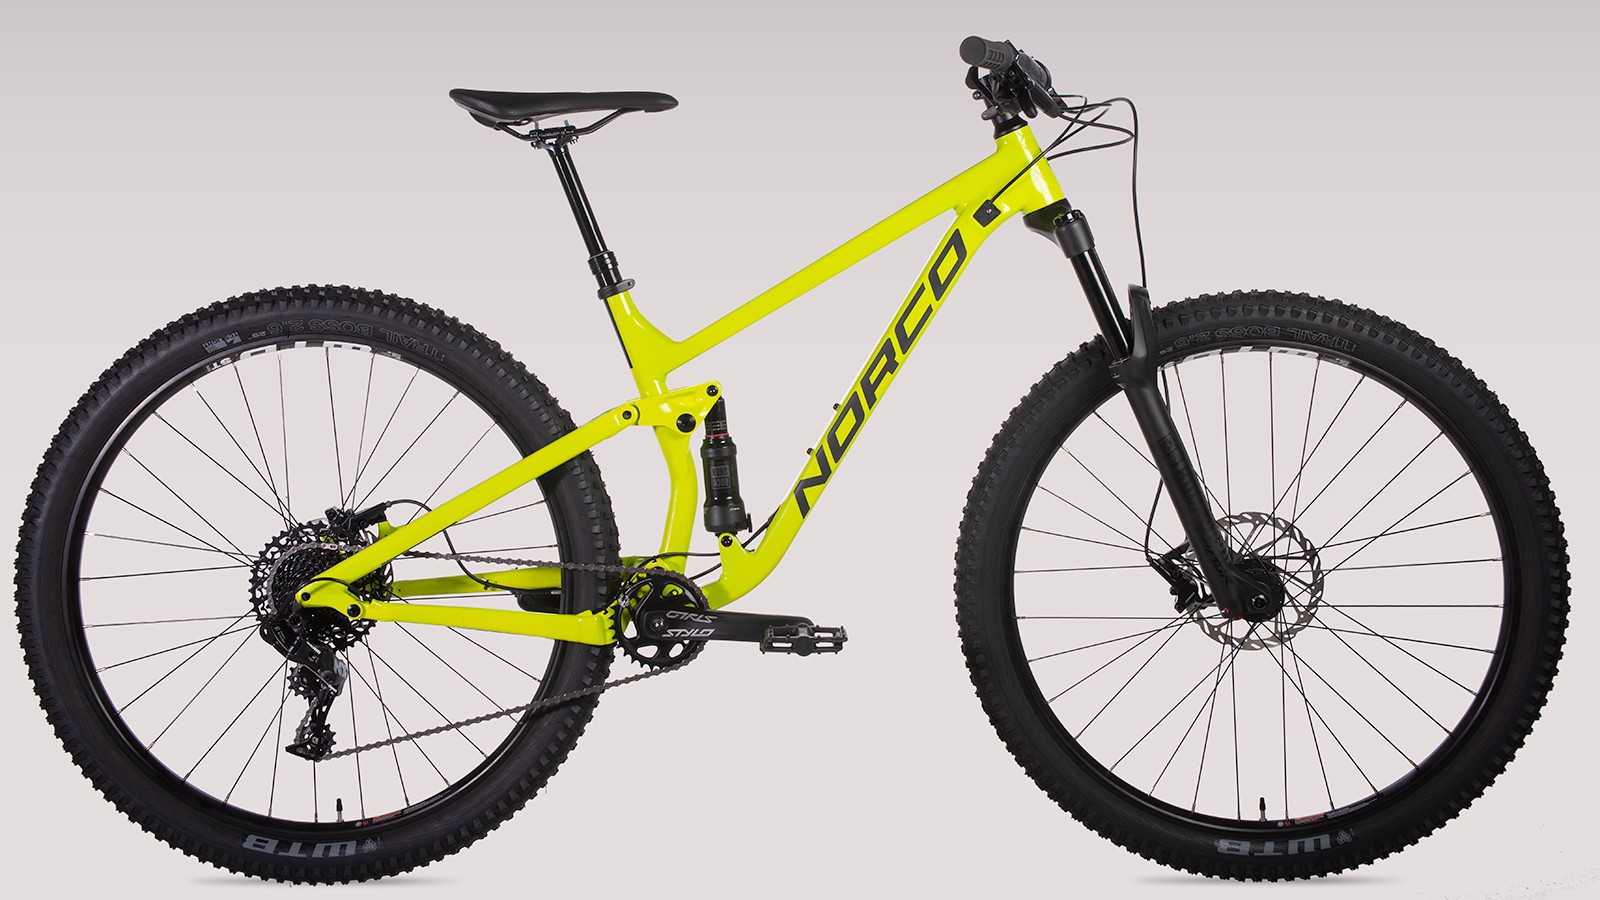 The 2019 Norco Fluid FS2